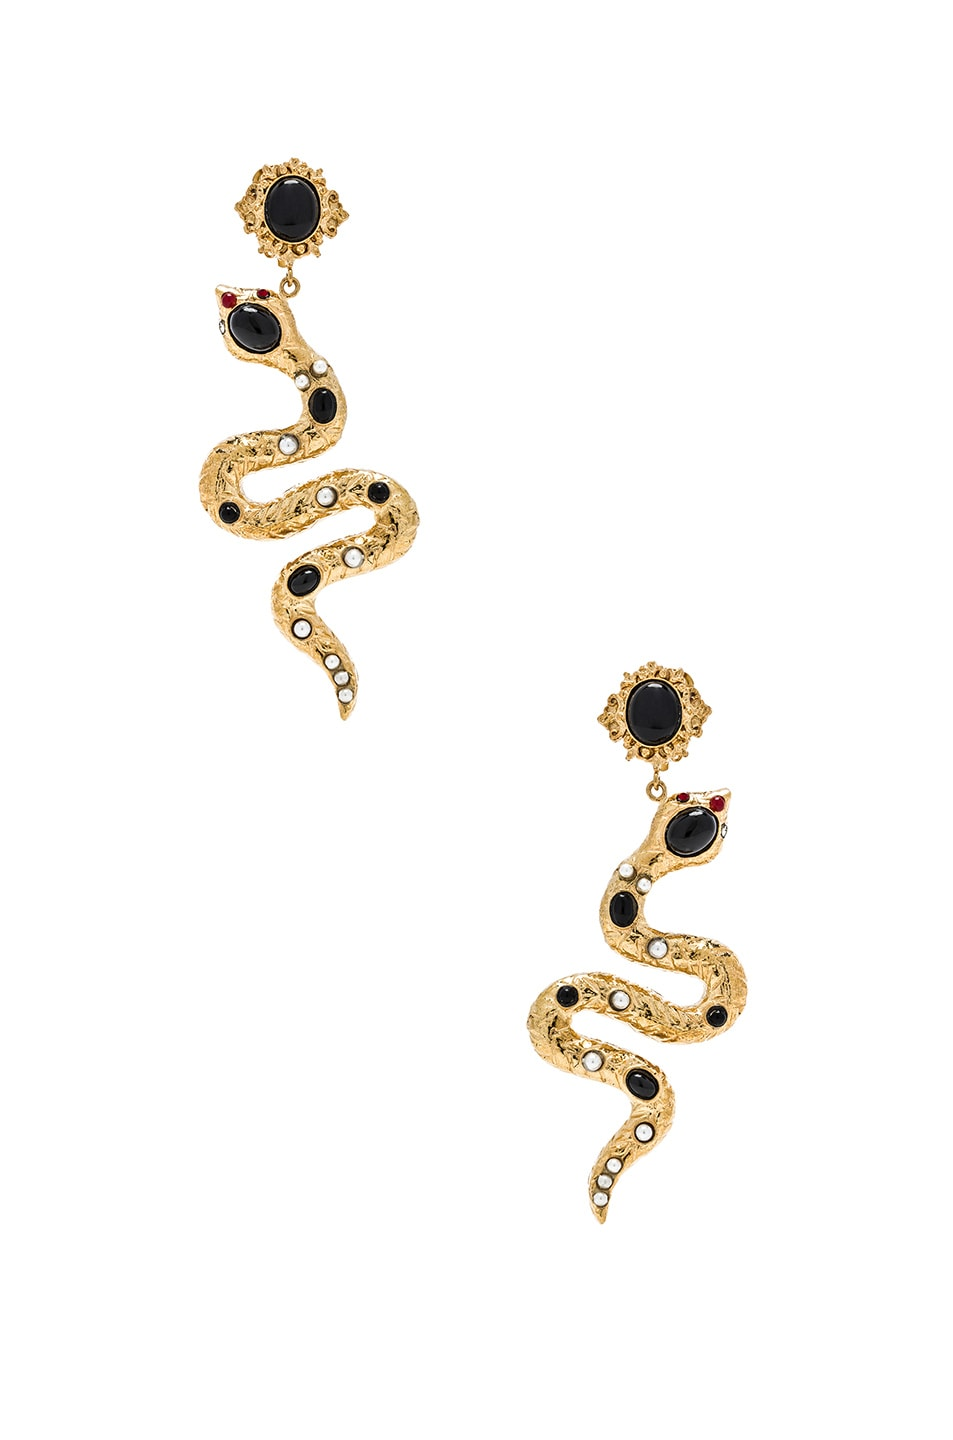 Image 1 of Christie Nicolaides Serpente Earrings in Gold